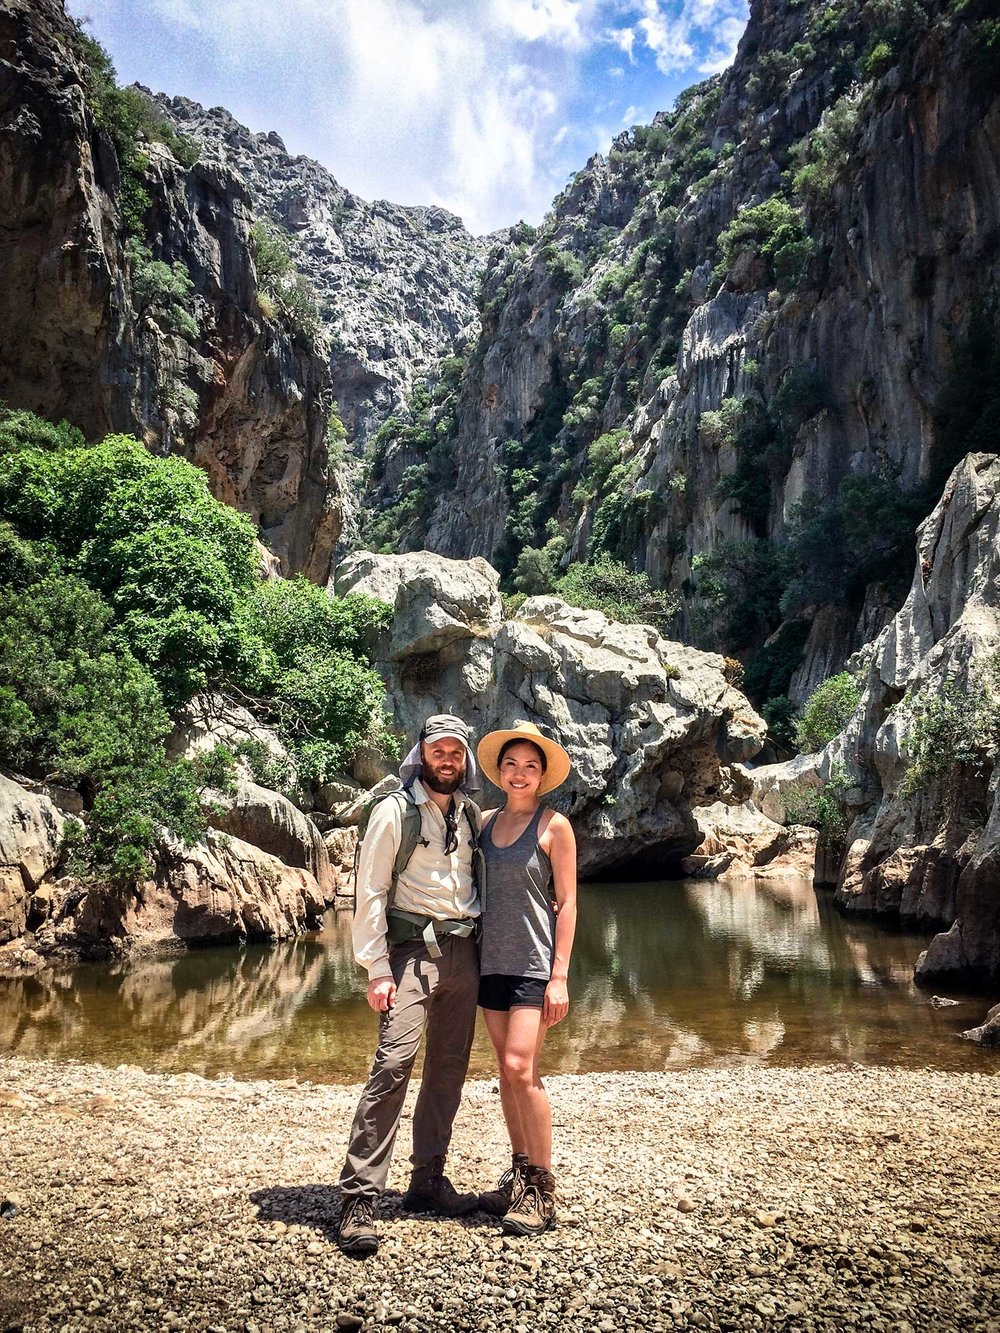 TDP-60-hiking-couple-torrent-de-pareis-mallorca-day-hike.jpg